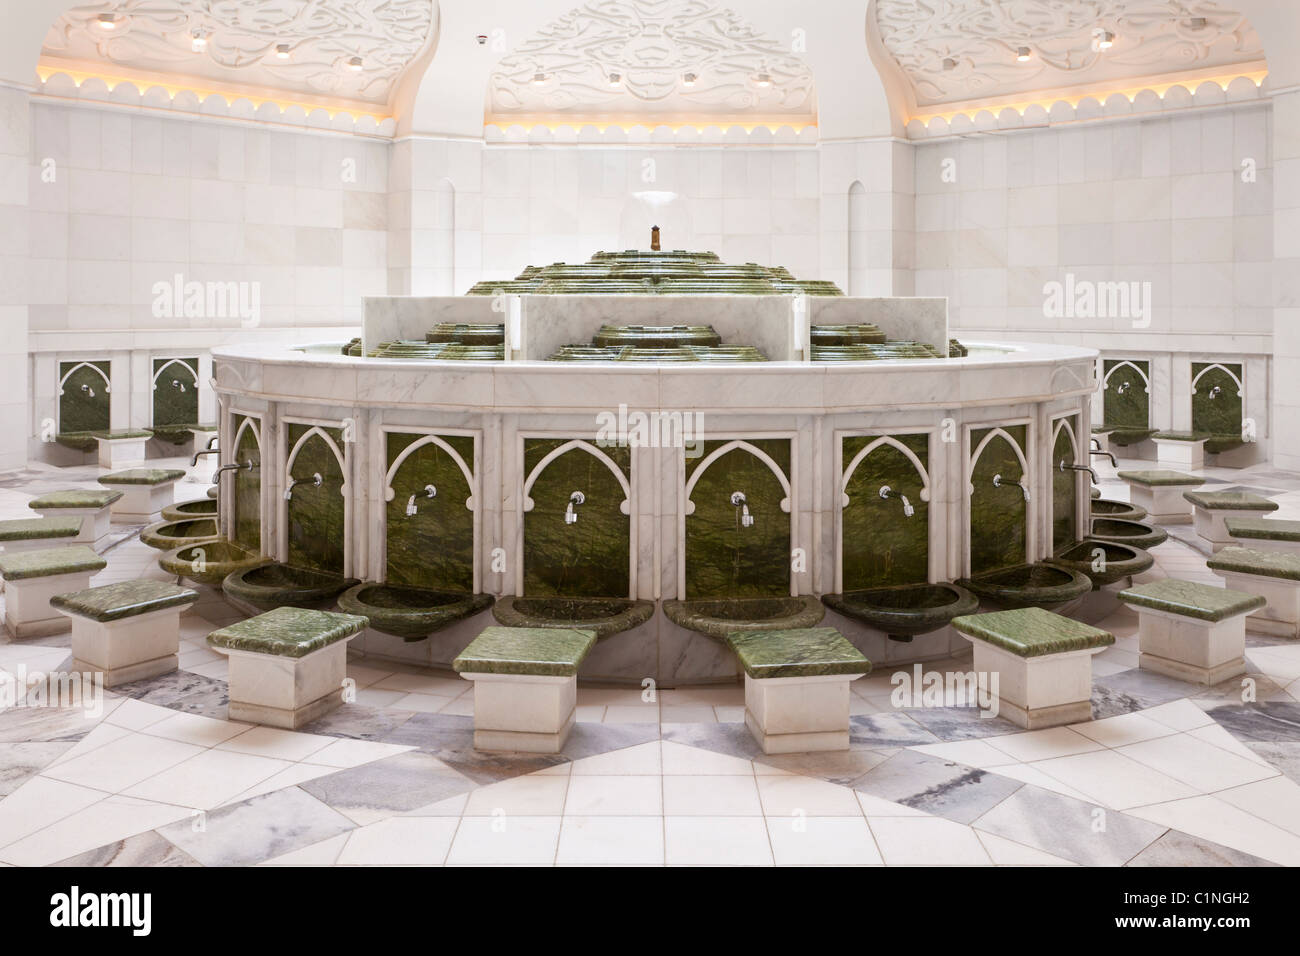 Exterior: Ablution Fountains And Baths In The The Sheikh Zayed Grand